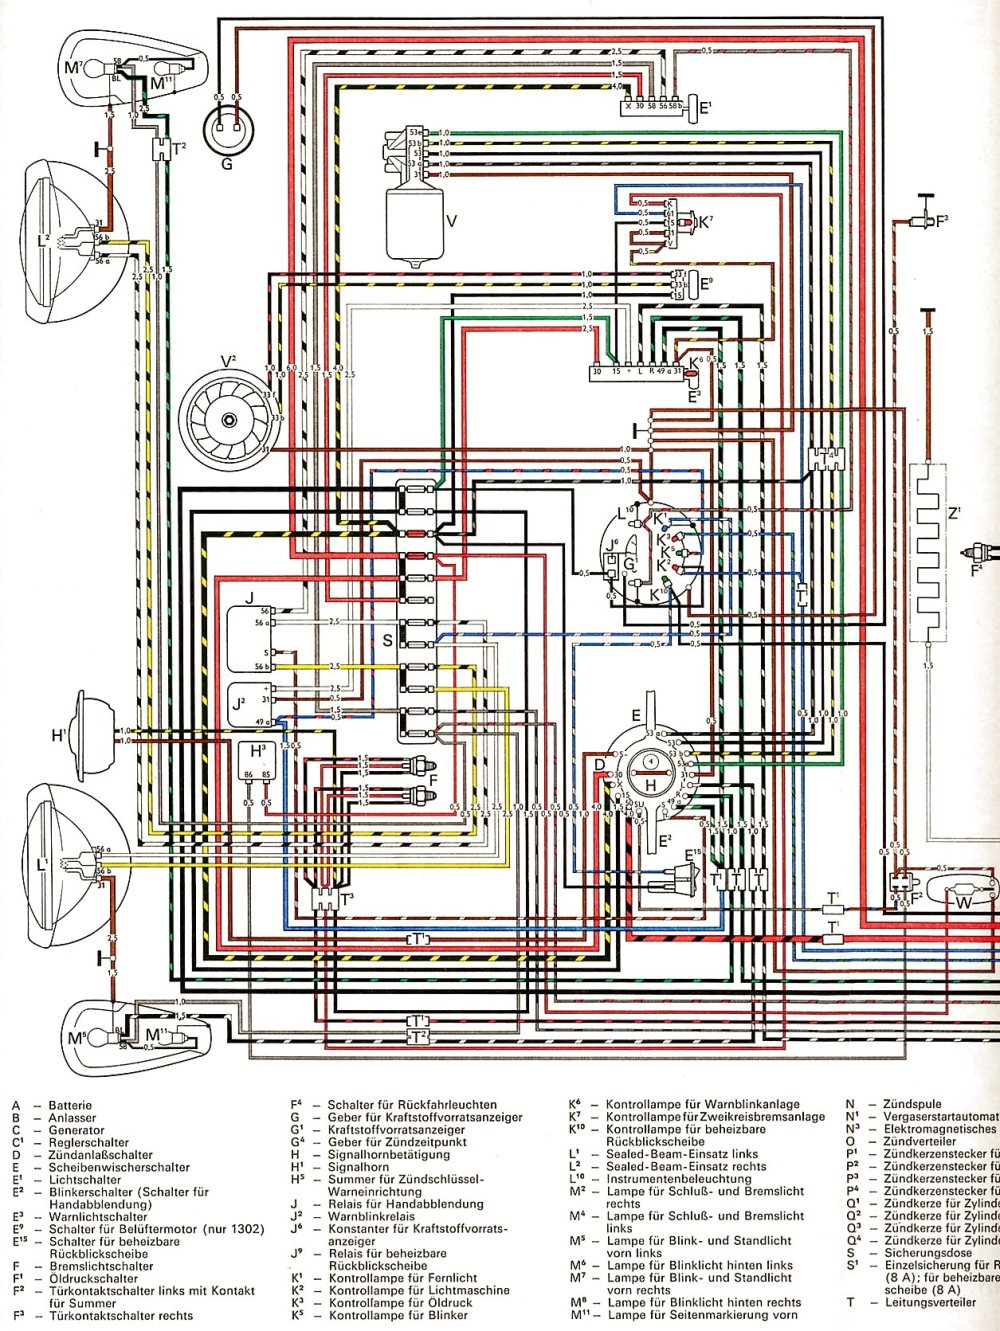 medium resolution of 1974 vw fuse box layout wiring diagrams u2022 rh laurafinlay co uk 2000 vw jetta fuse